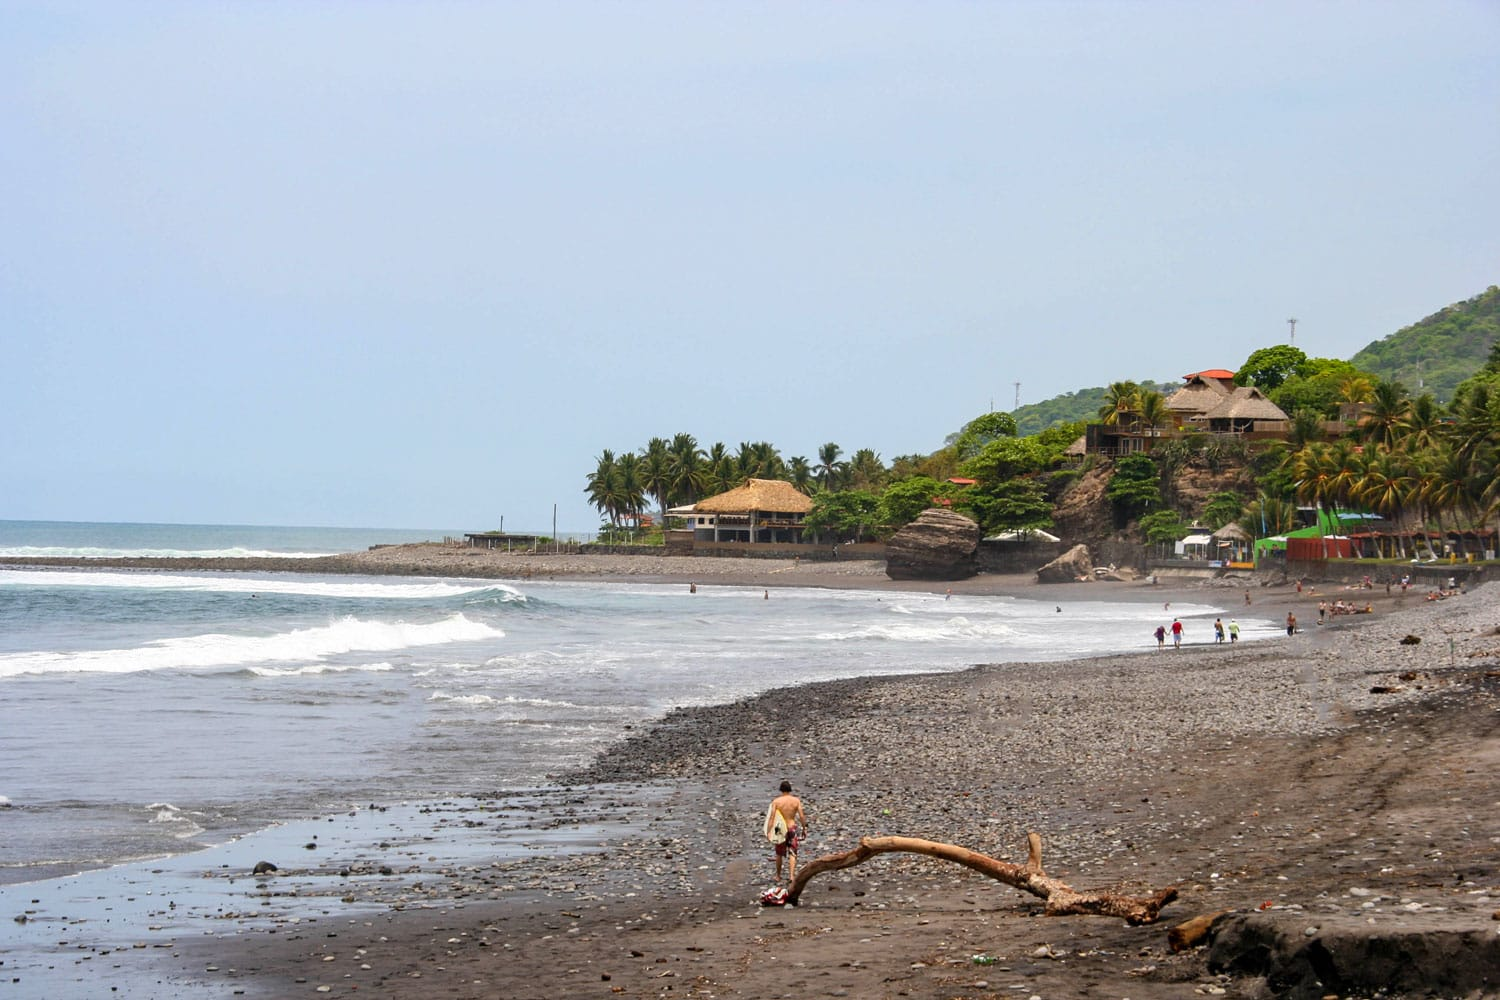 El Tunco beach in El Salvador, Central America